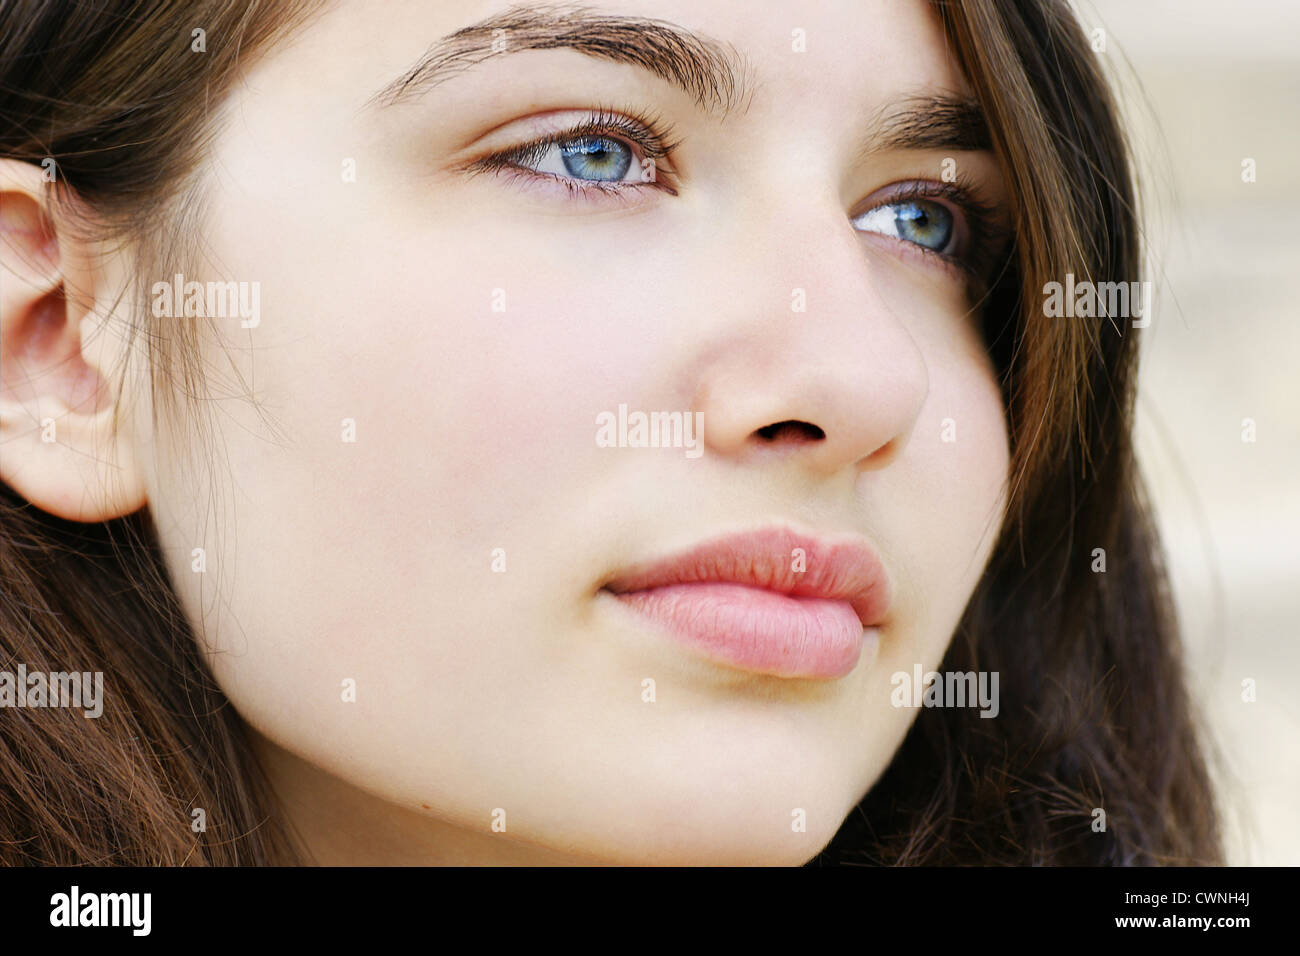 Portrait of s beautiful hopeful or pensive young woman with fair skin and light blue and green eyes, simple and - Stock Image